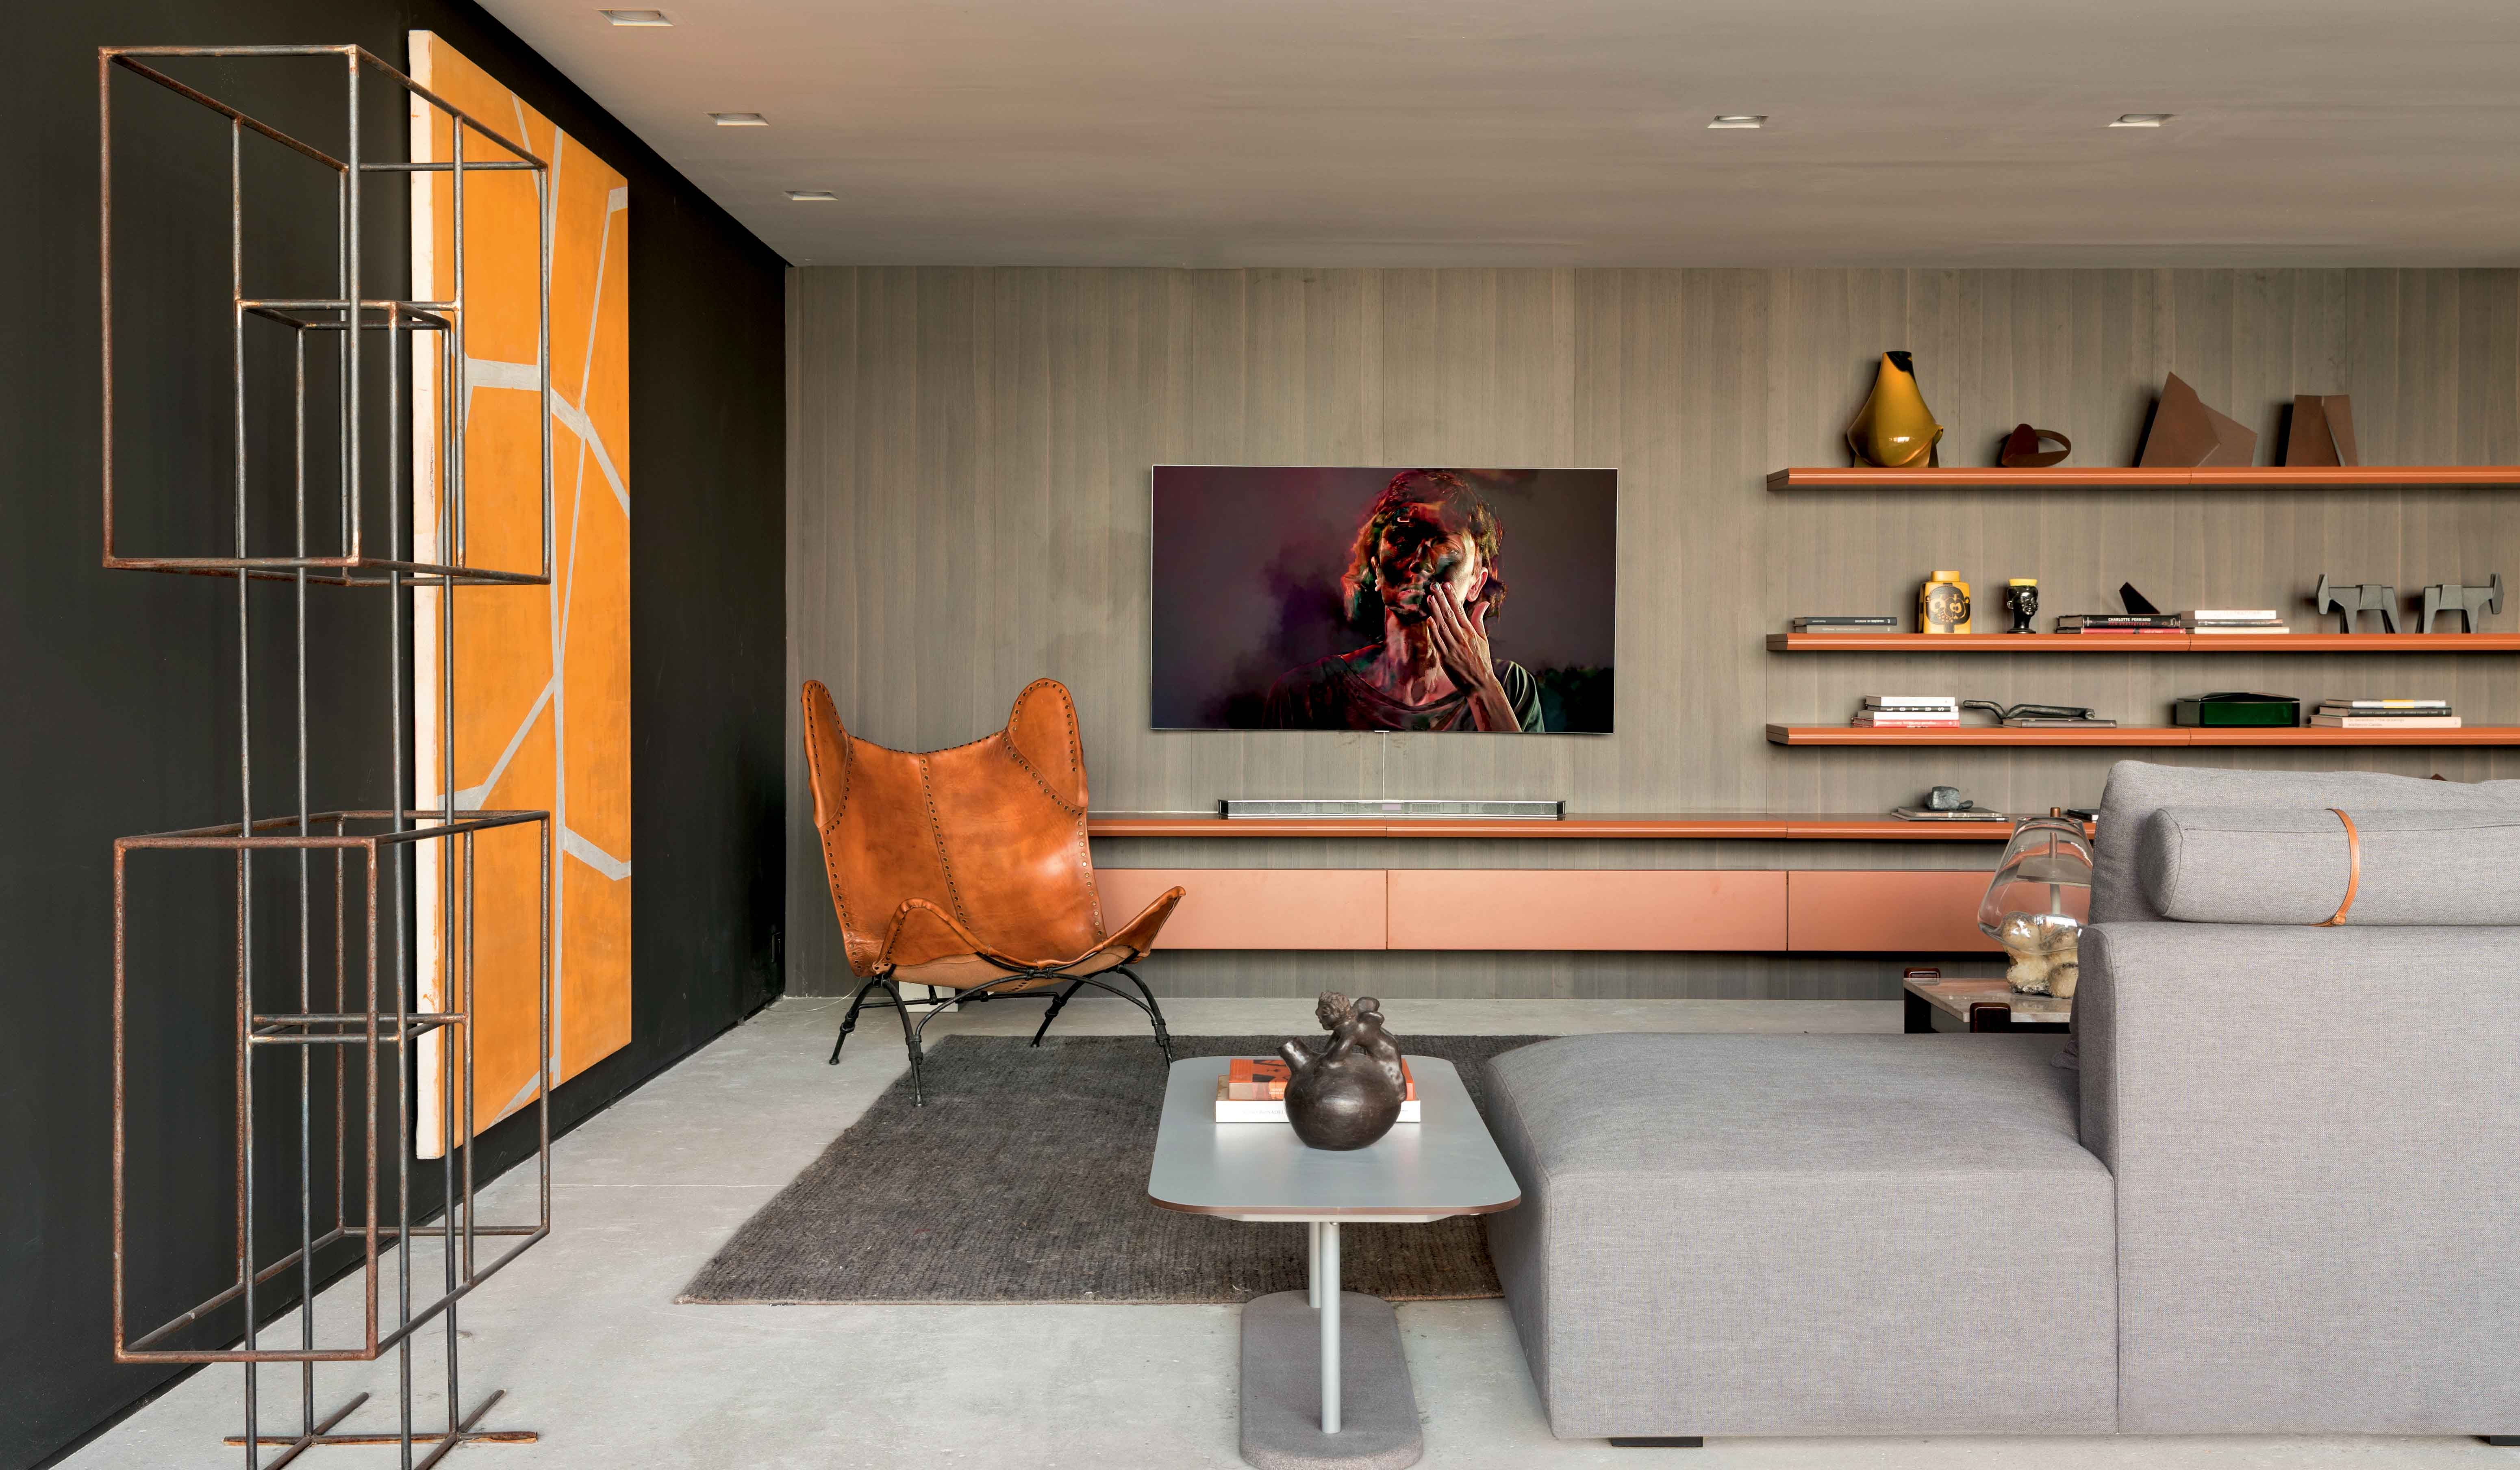 Dell Anno's Home Theater Are Practical And Elegant Spaces That Play With Harmonious Combinations Of Materials And Unprecedented Modern Design